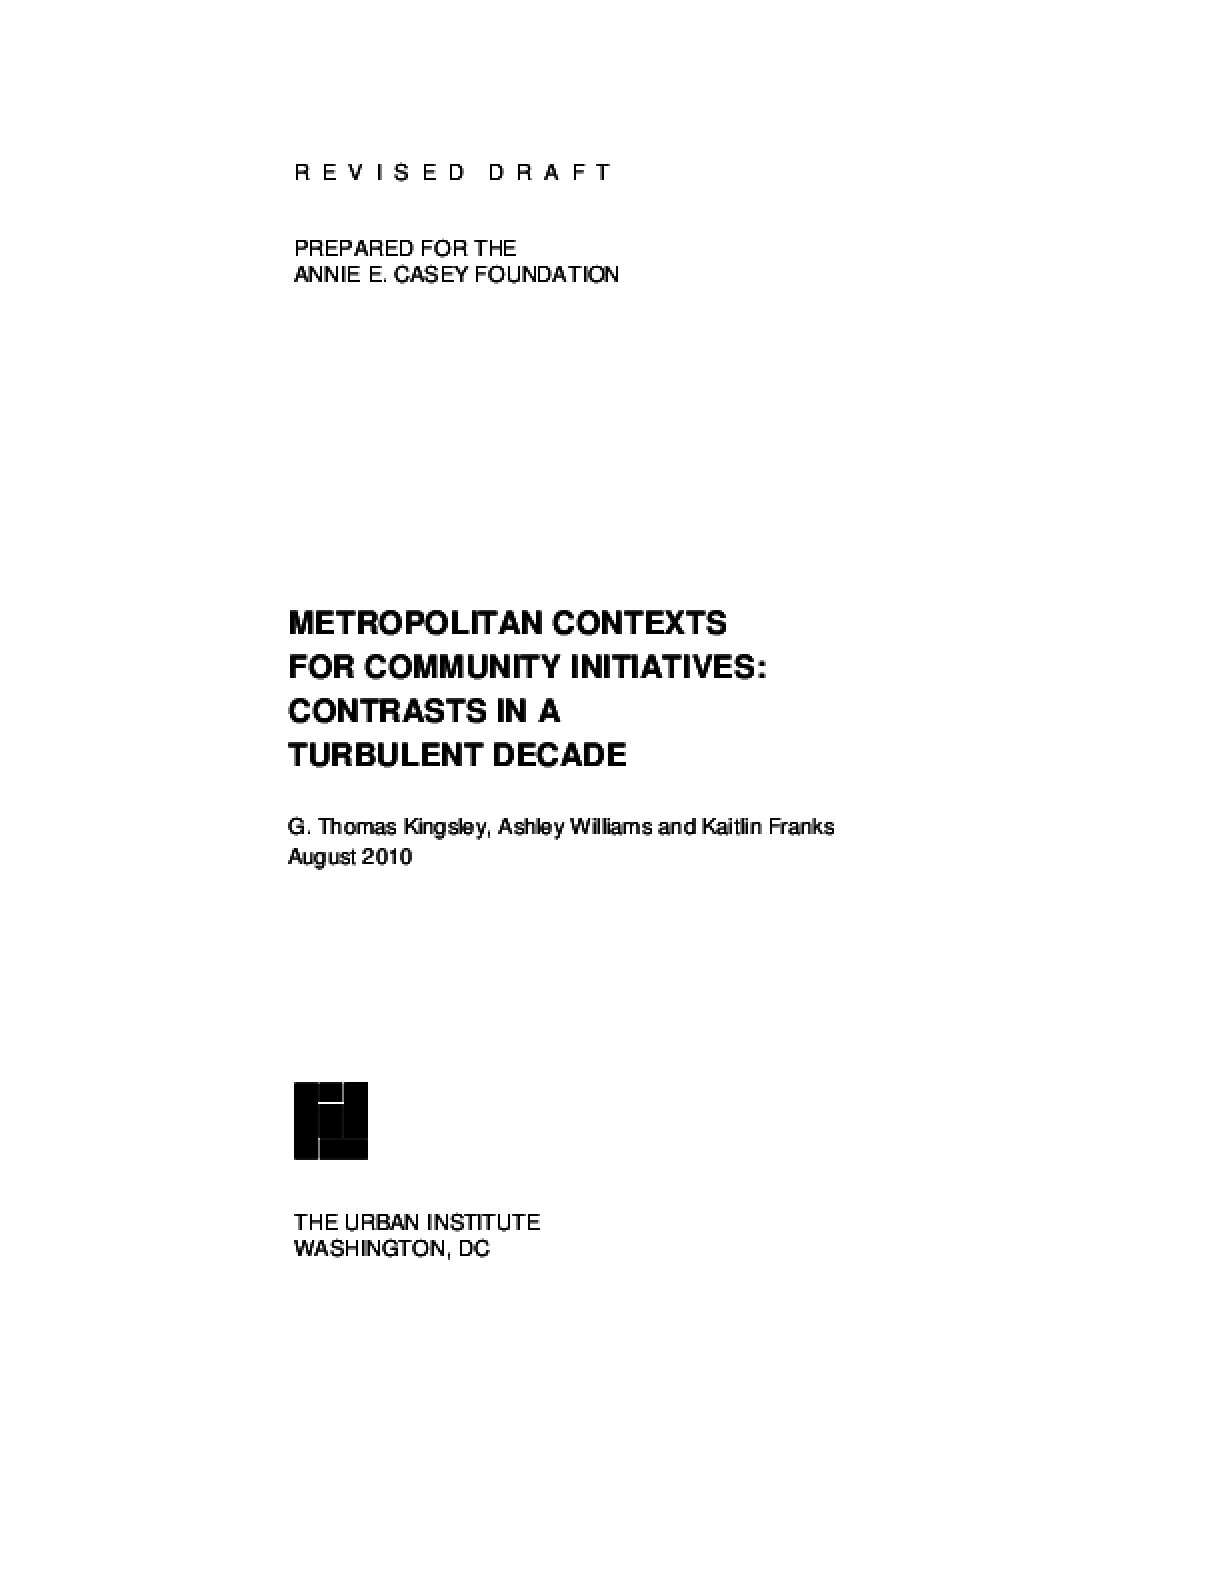 Metropolitan Contexts for Community Initiatives: Contrasts in a Turbulent Decade